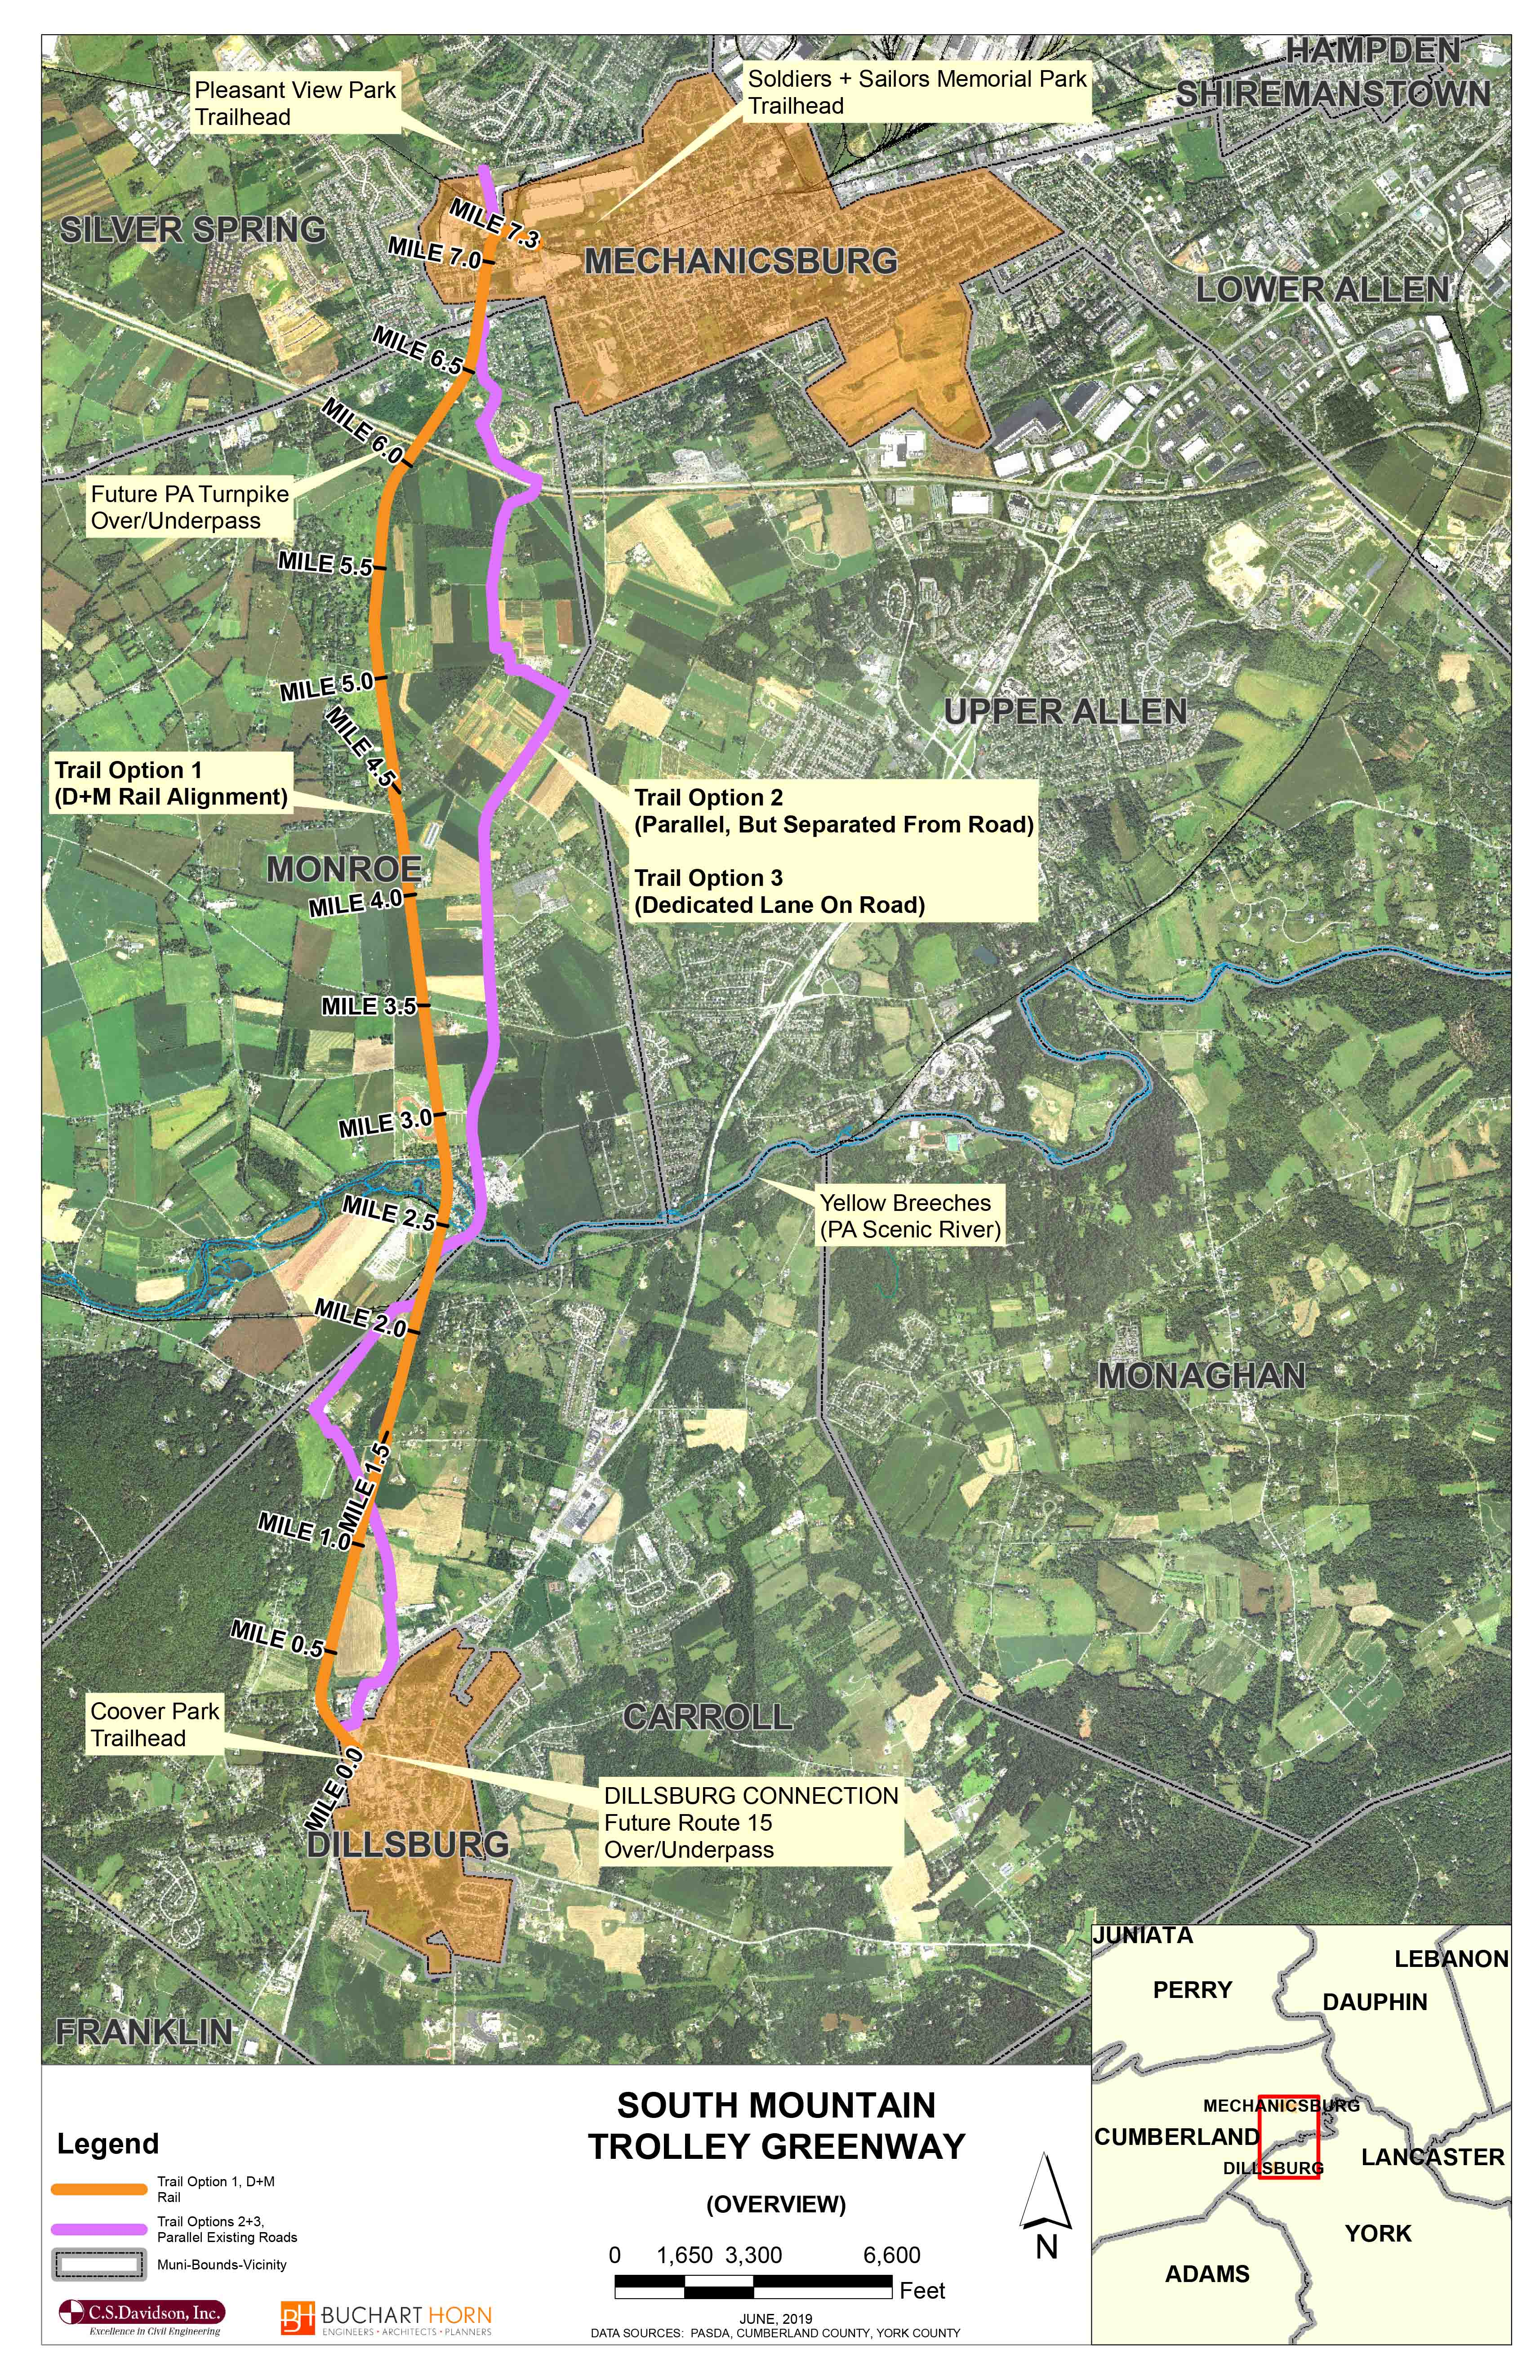 OVERVIEW MAP: South Mountain Trolley Trail, Dillsburg to Mechanicsburg